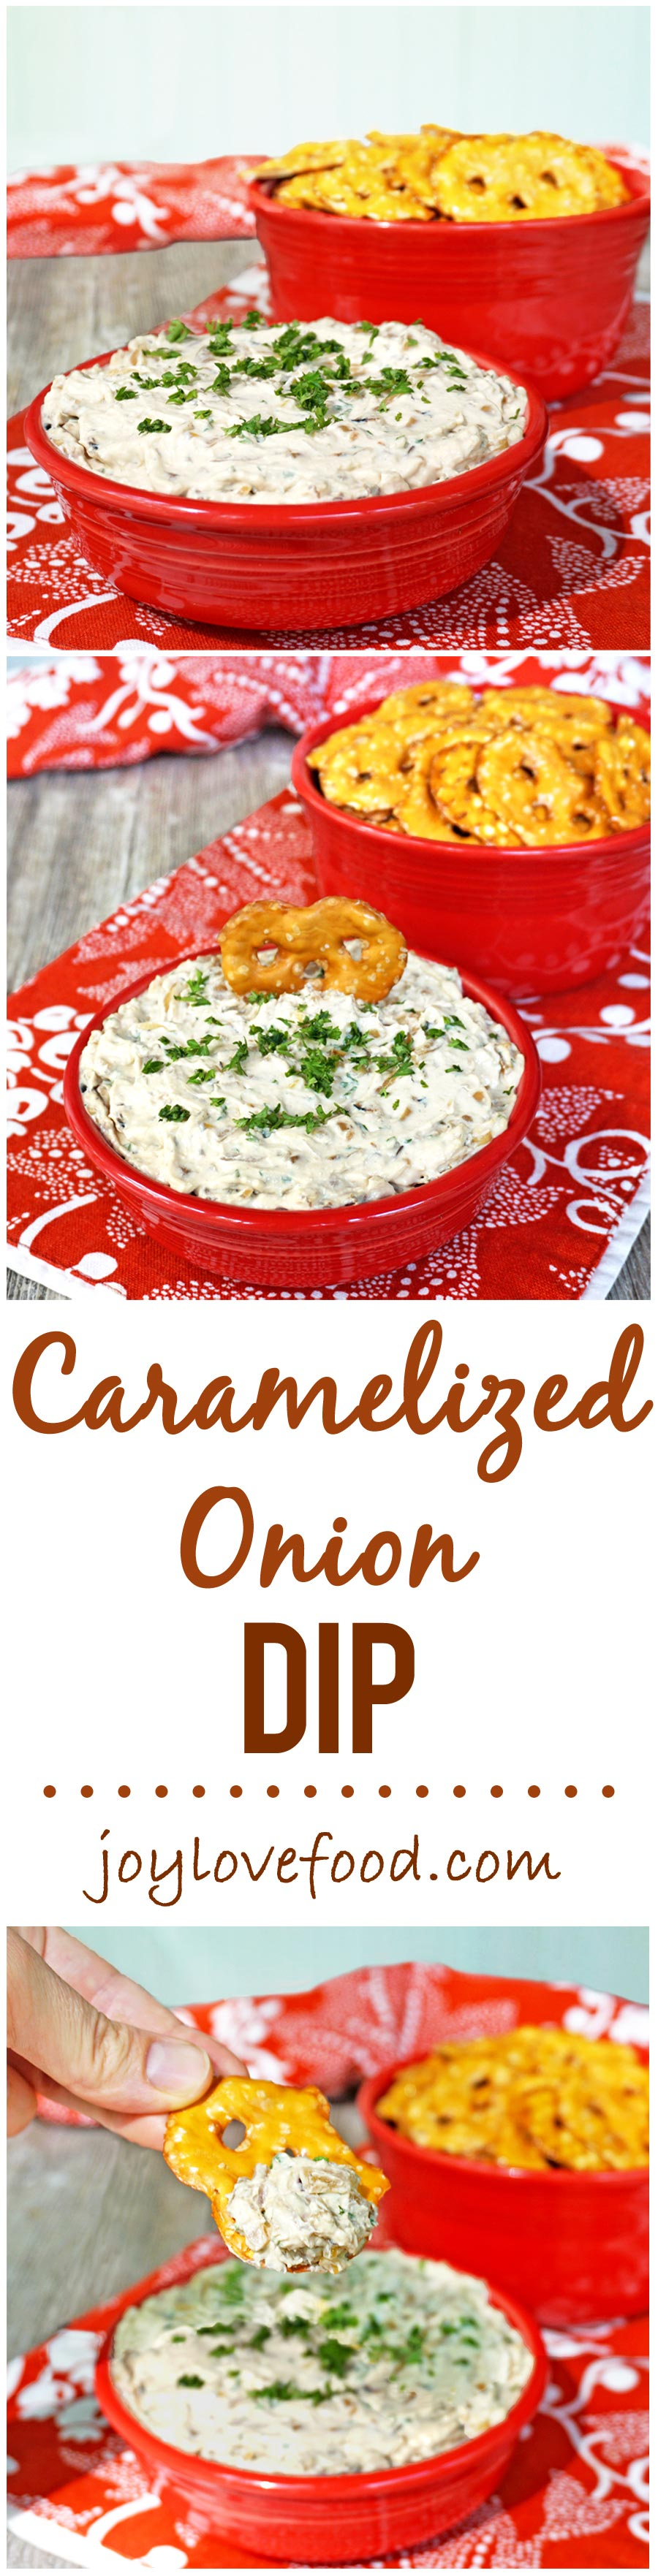 Caramelized Onion Dip - a delicious, creamy dip that is full of flavor ...